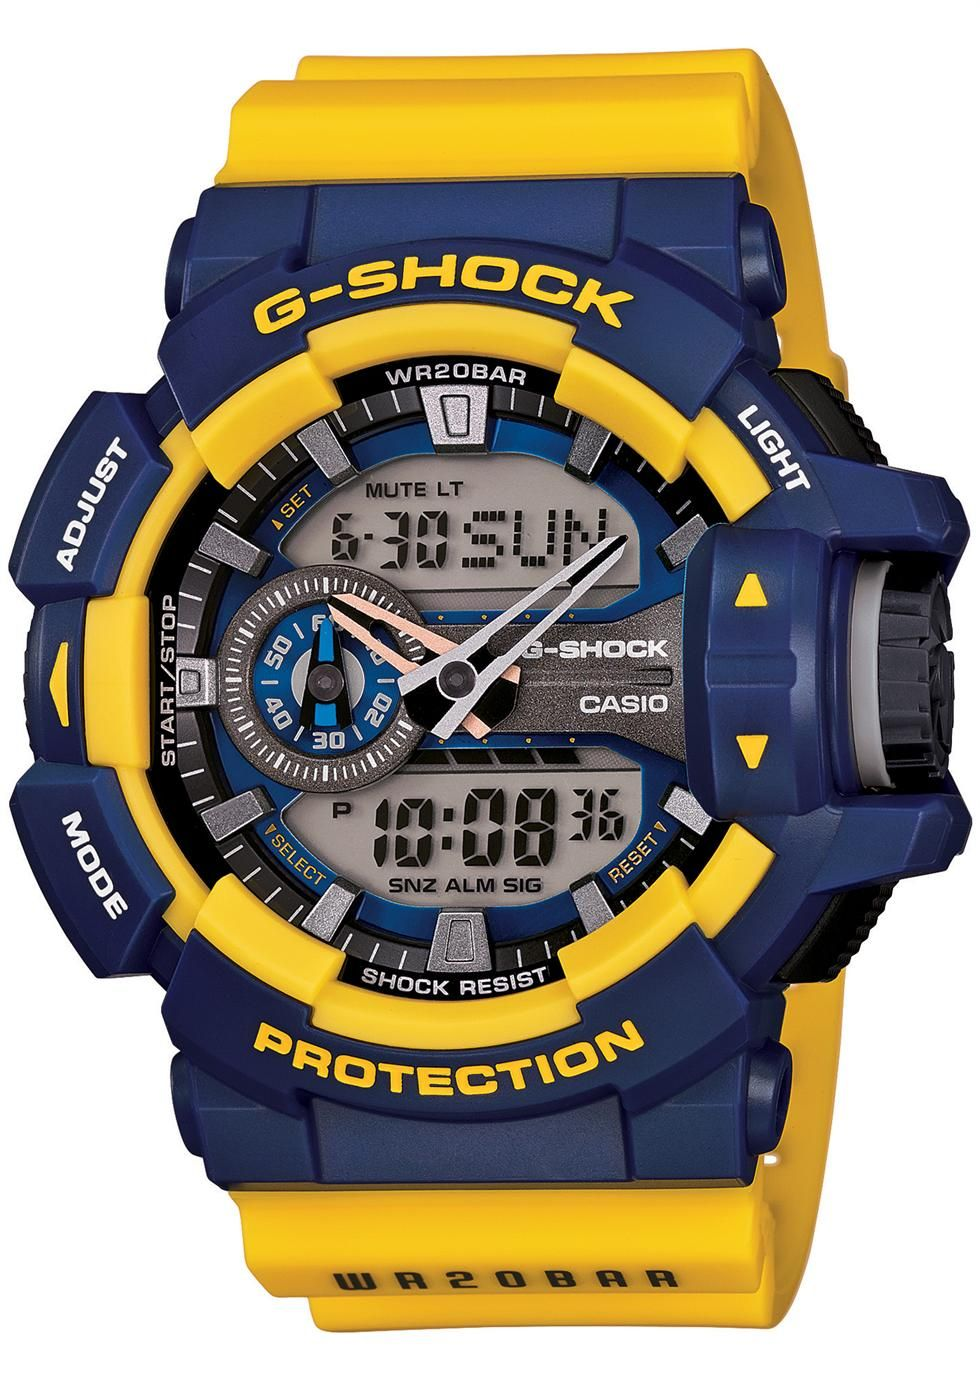 925143c173d4 G-Shock GA-400 Series Worldtime -Navy Gold